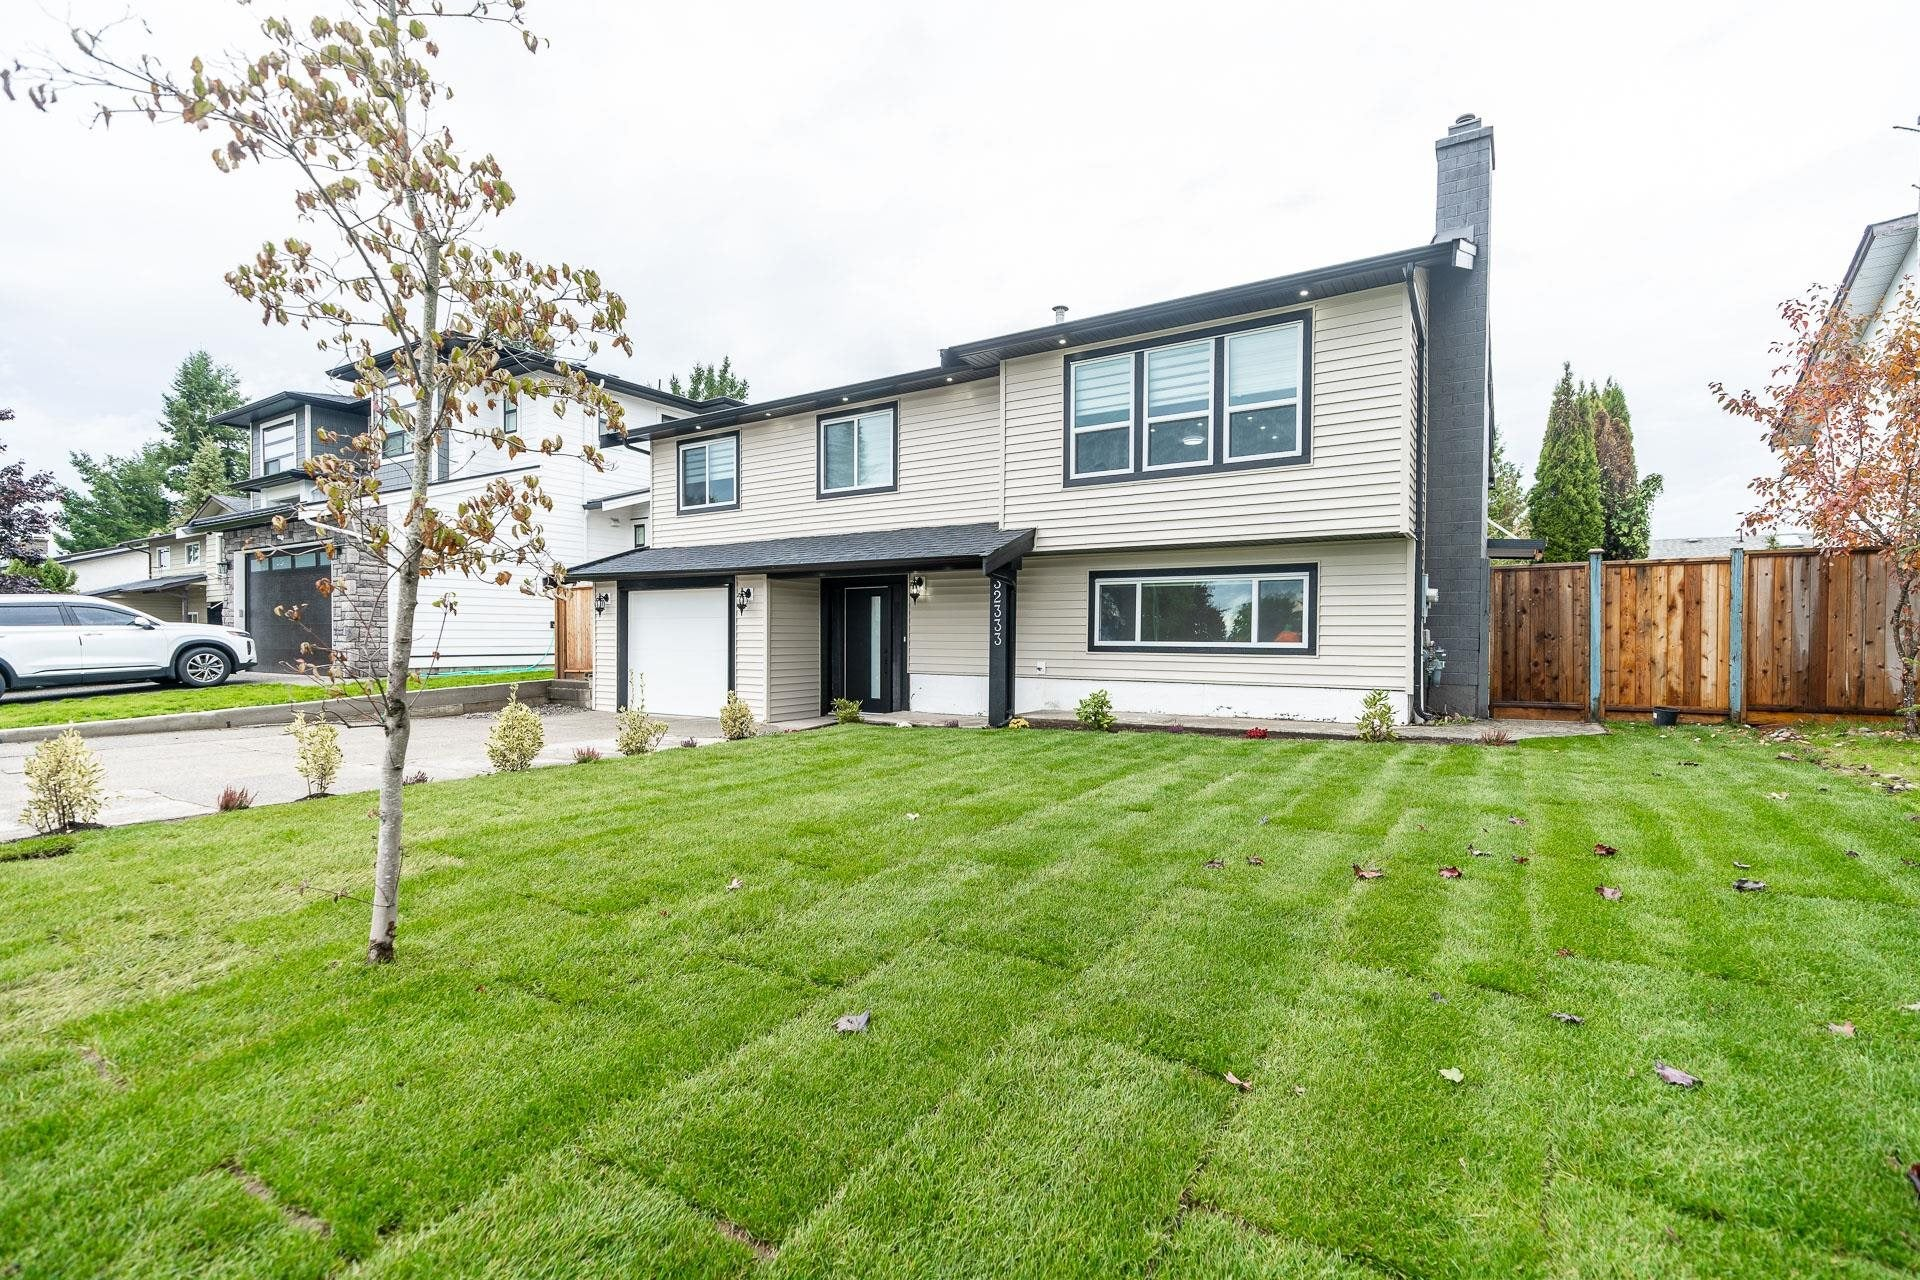 32333 ADAIR AVENUE - Abbotsford West House/Single Family for sale, 5 Bedrooms (R2626545) - #1